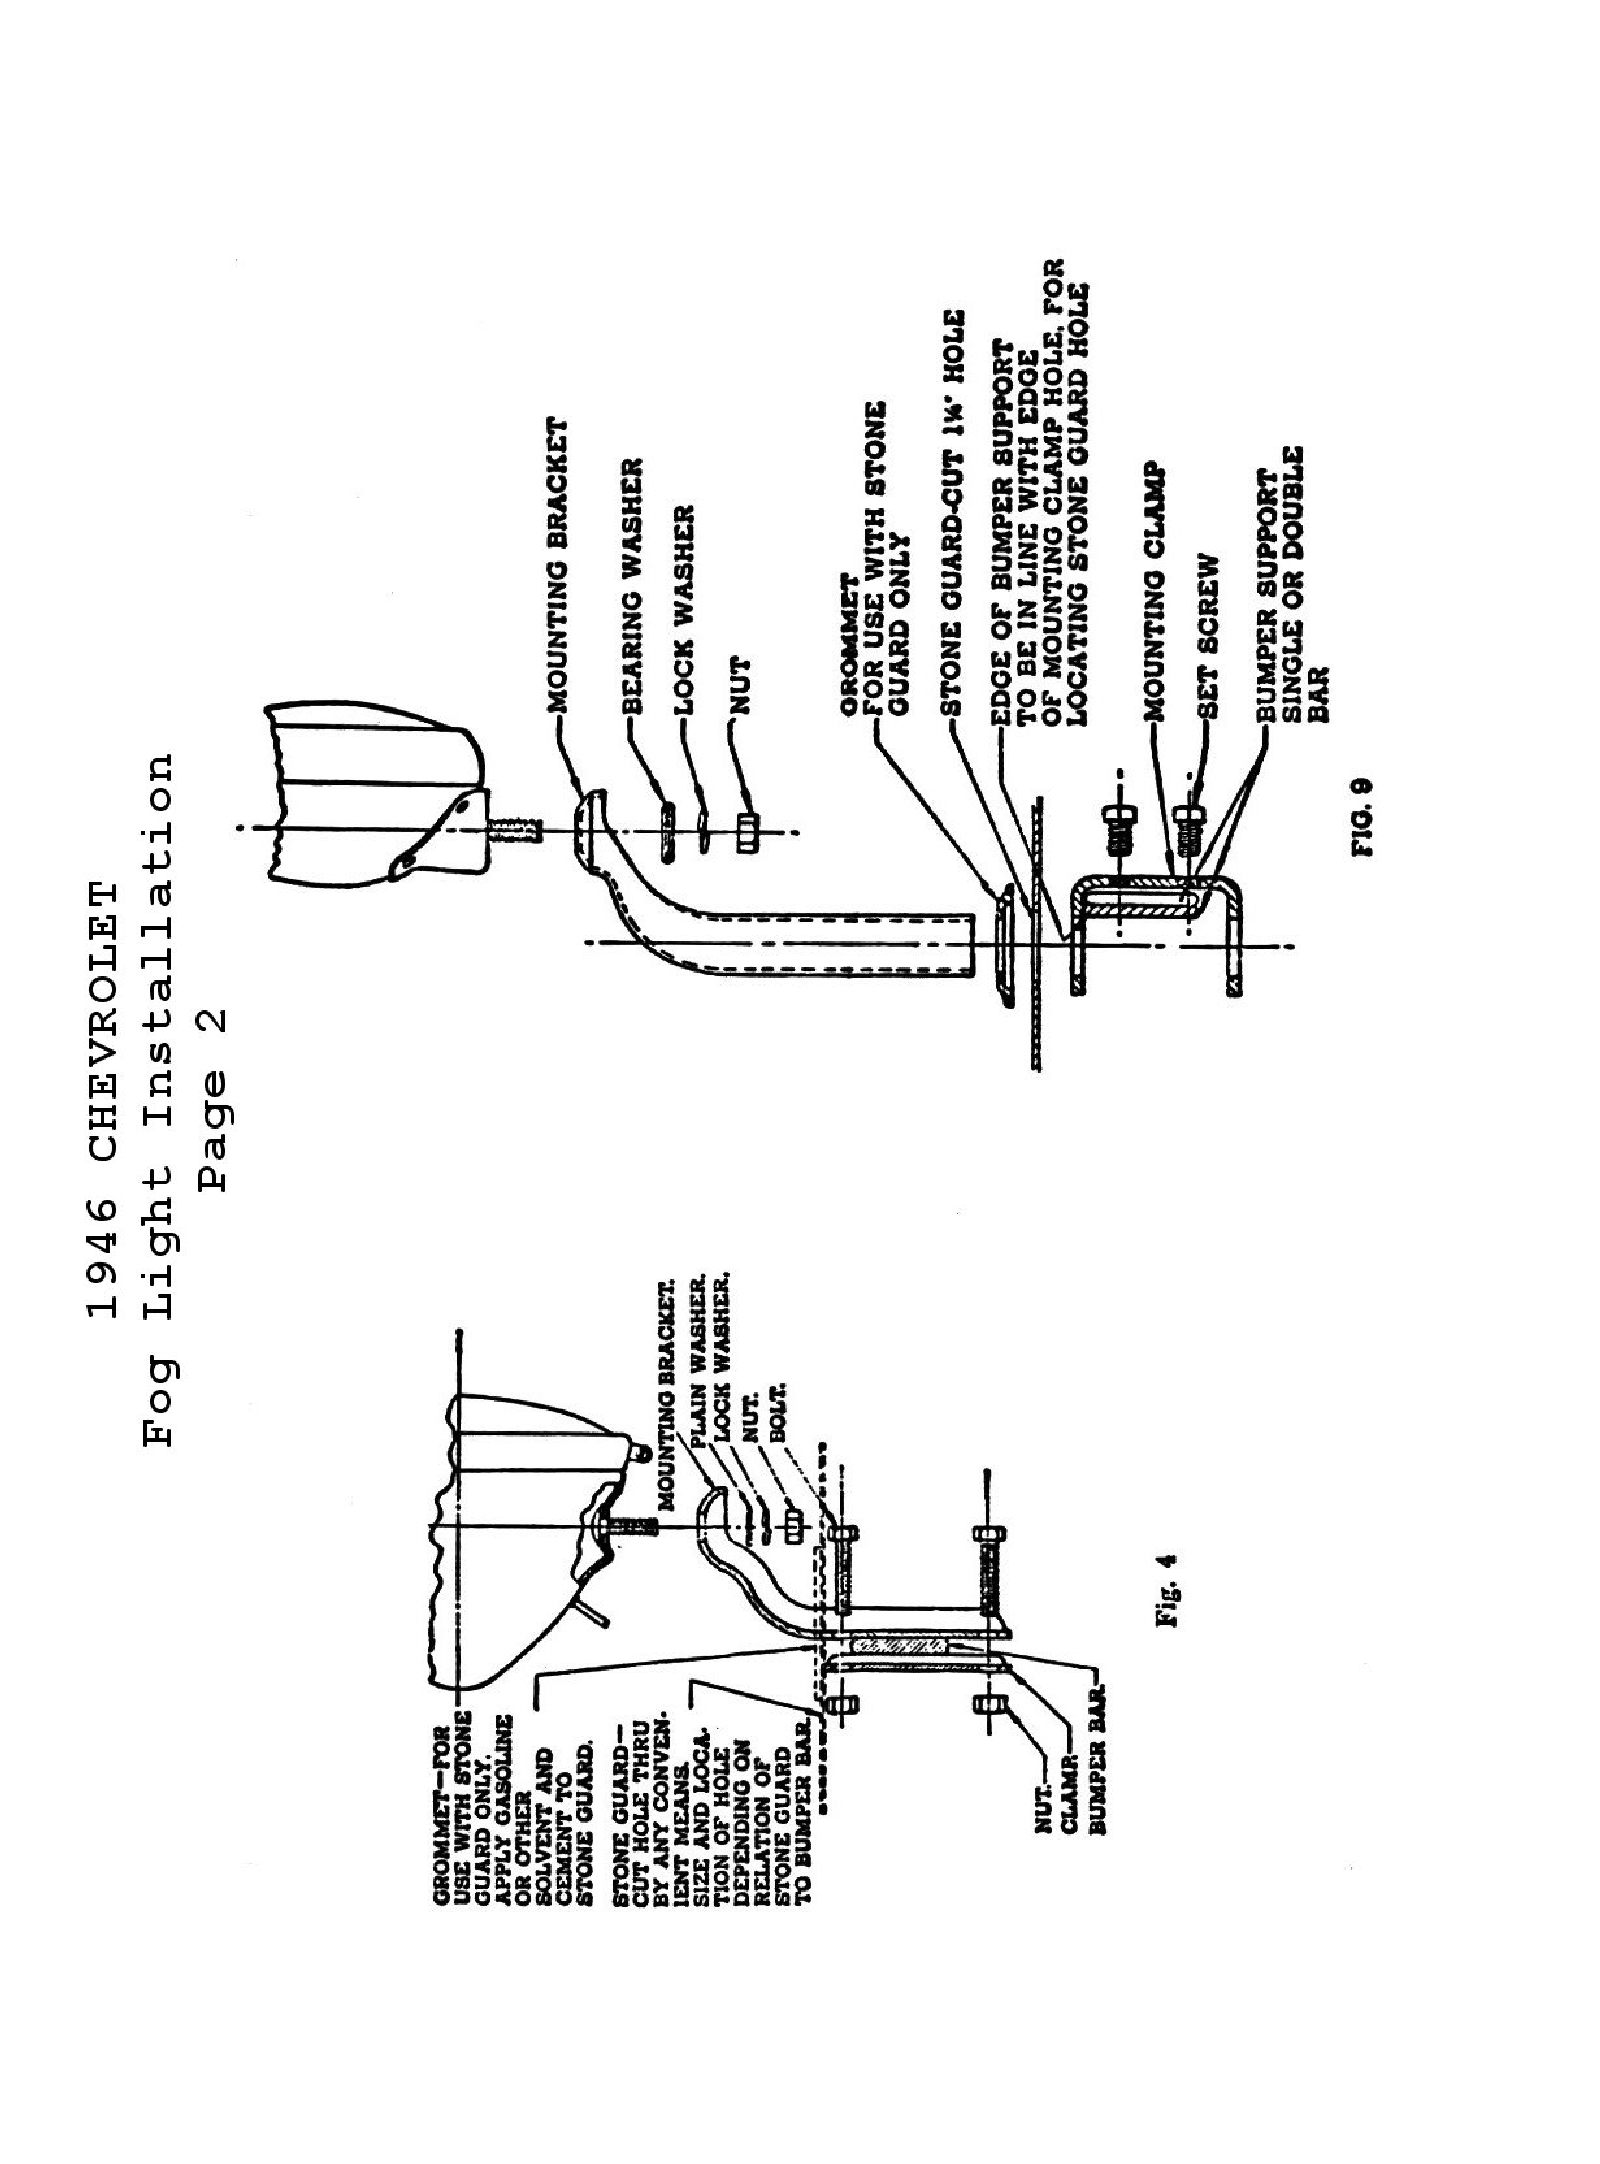 hight resolution of 1965 mustang gt fog light wiring diagrams wiring library rh 8 skriptoase de 2008 chevy fog light wiring diagram 2003 silverado fog light wiring diagram